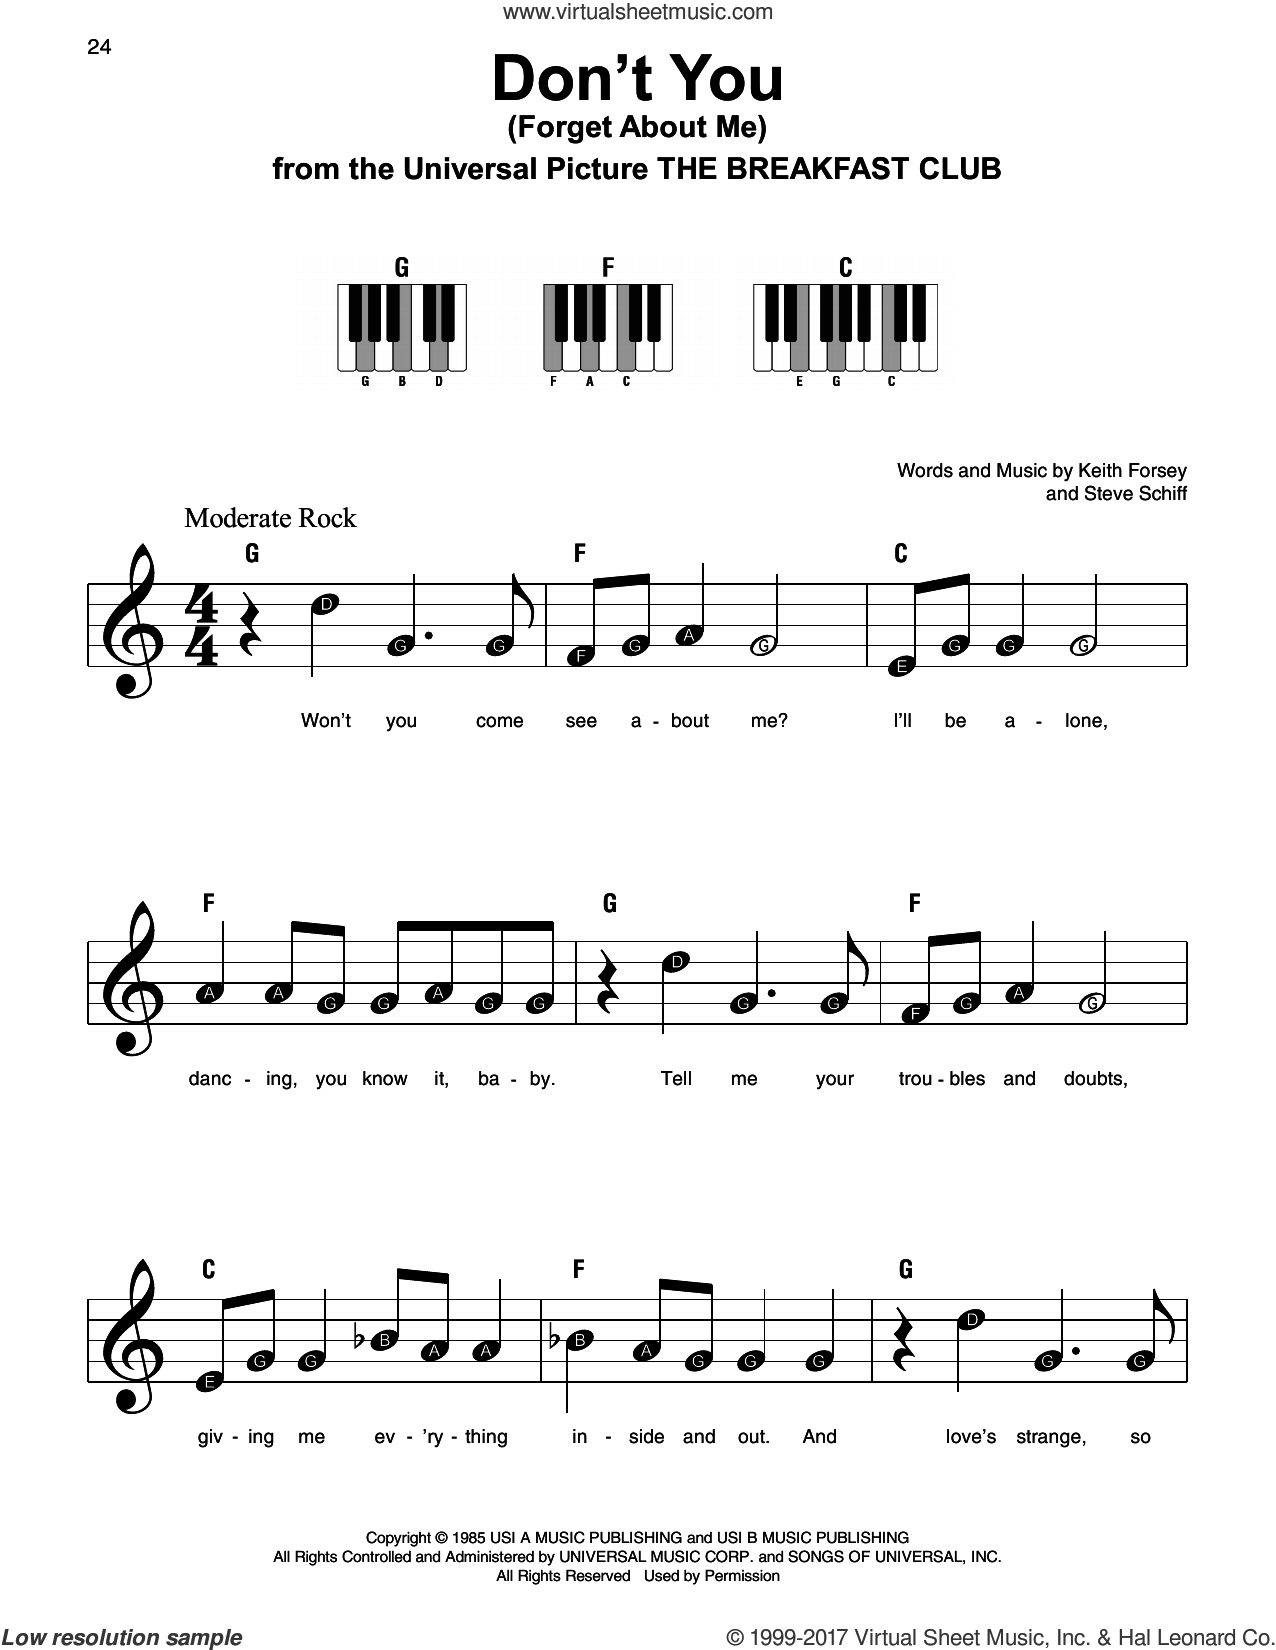 Don't You (Forget About Me) sheet music for piano solo by Simple Minds, Keith Forsey and Steve Schiff, beginner skill level